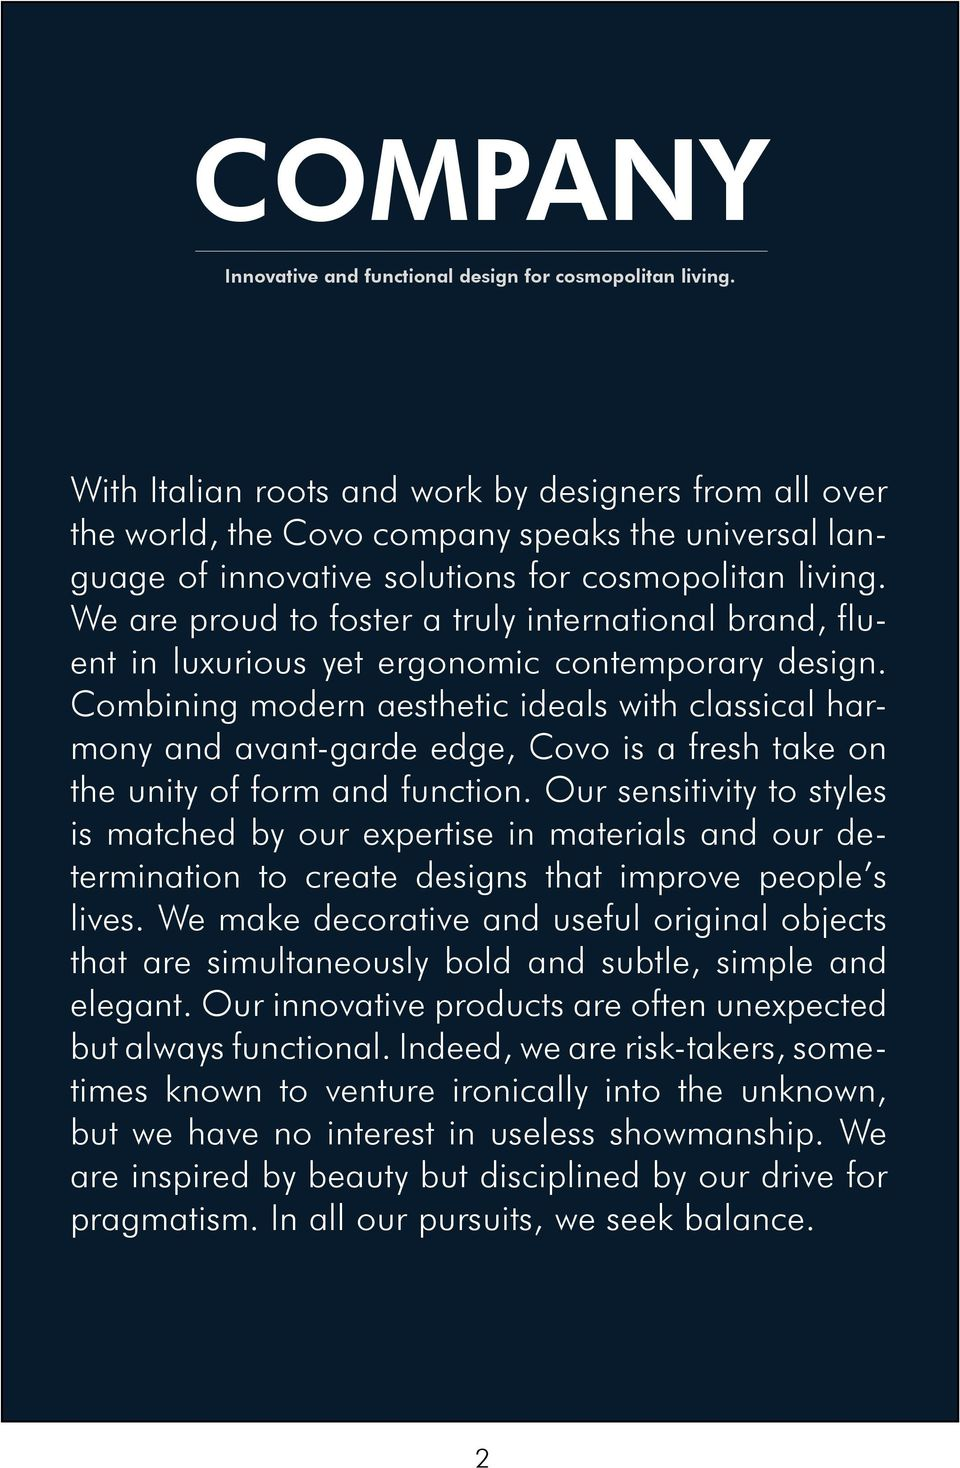 We are proud to foster a truly international brand, fluent in luxurious yet ergonomic contemporary design.